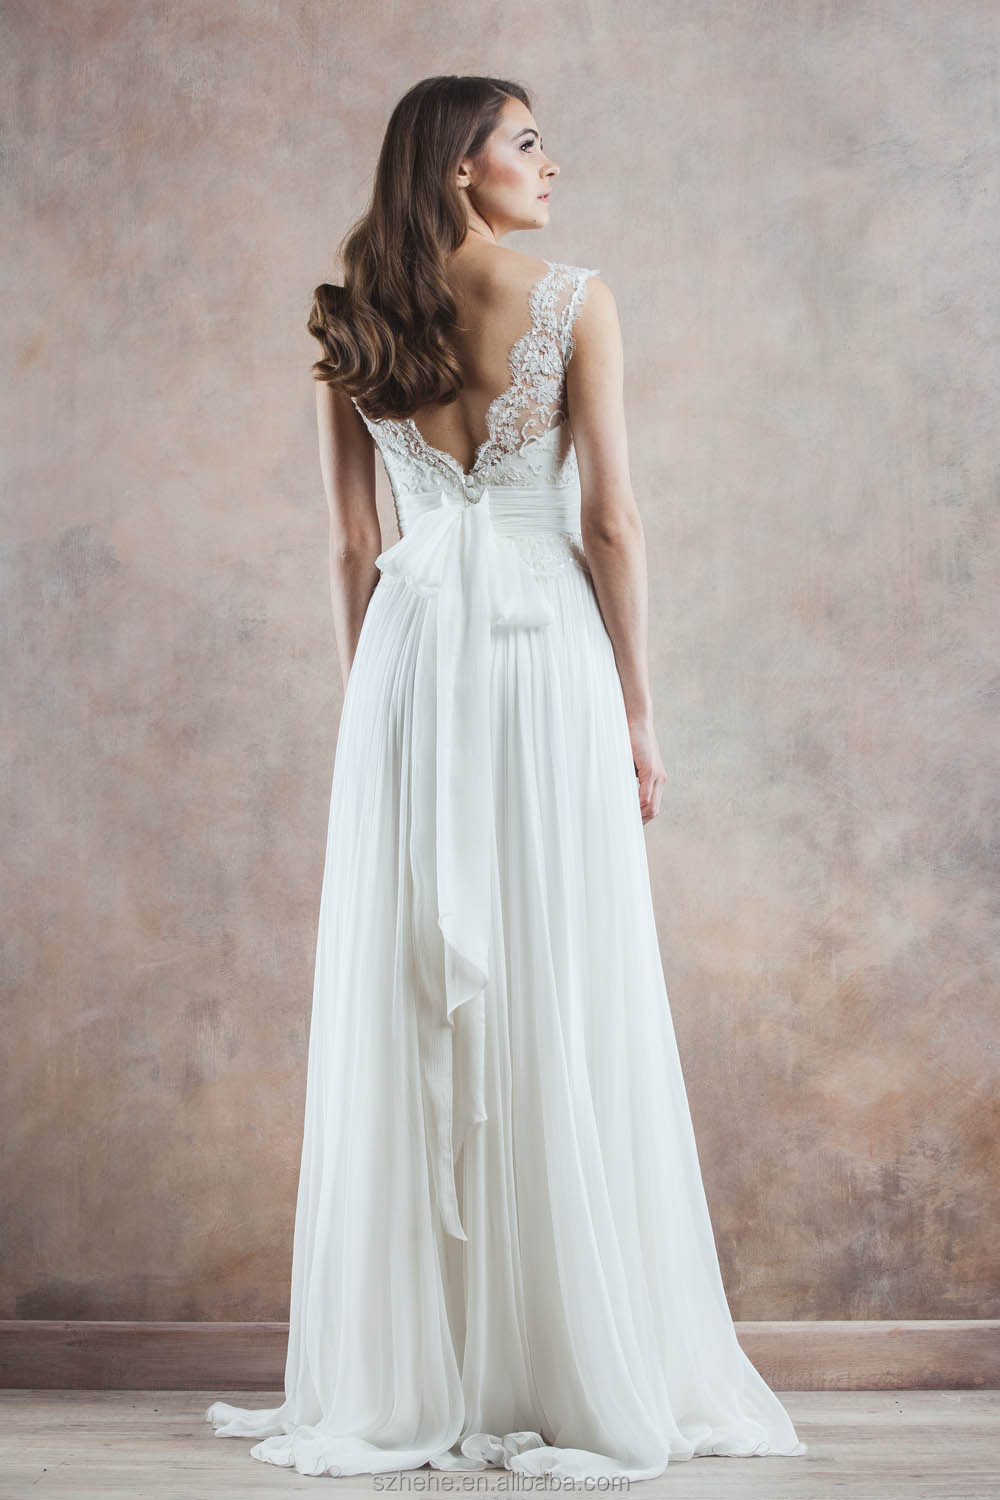 Simple Casual Wedding Dresses. Play Around With These Wonderful ...